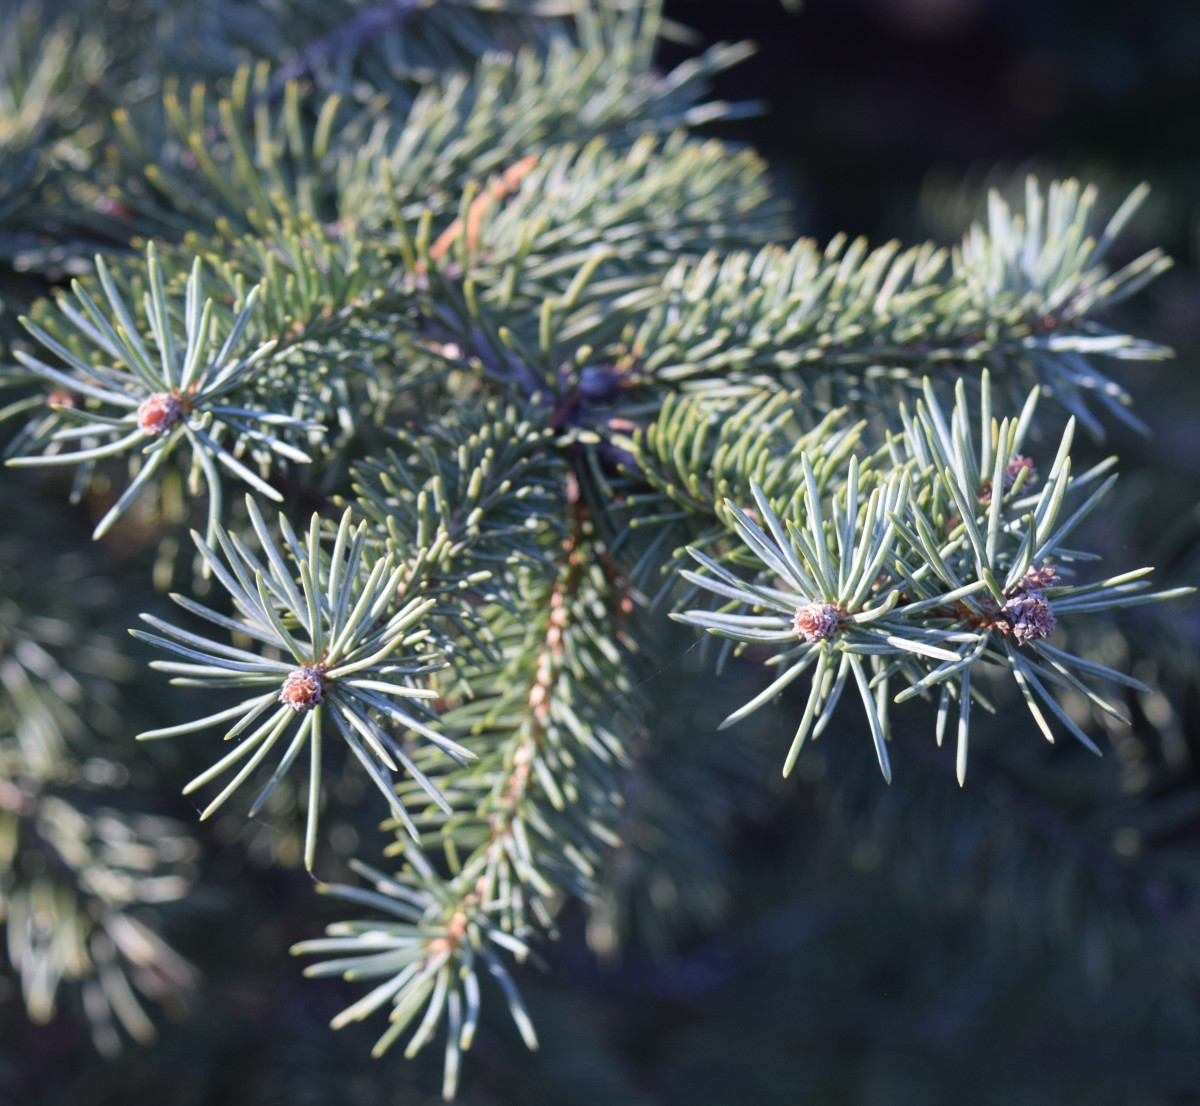 Needle-like foliage of the conifer Blue Spruce.